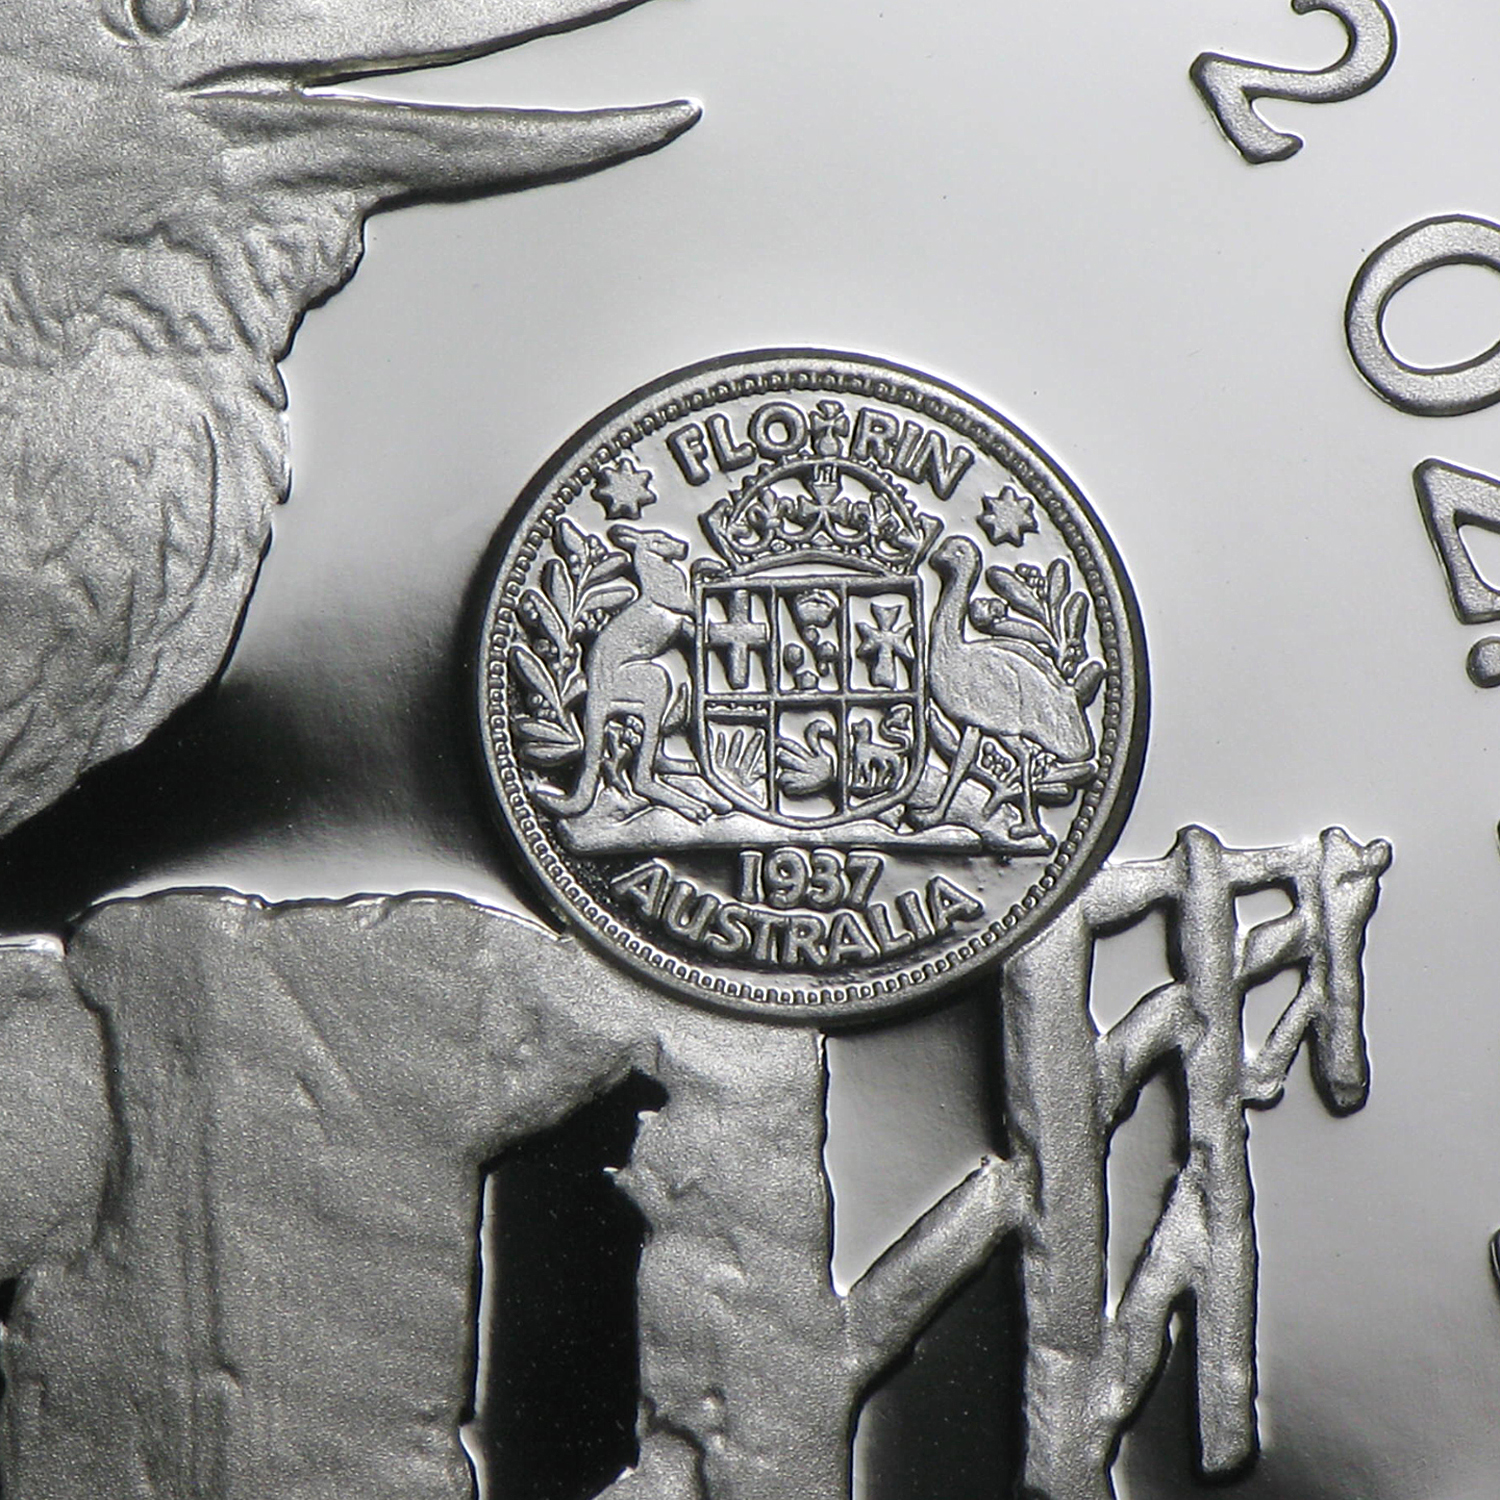 1997 Australia 2 Oz Silver Kookaburra Proof Crown Privy